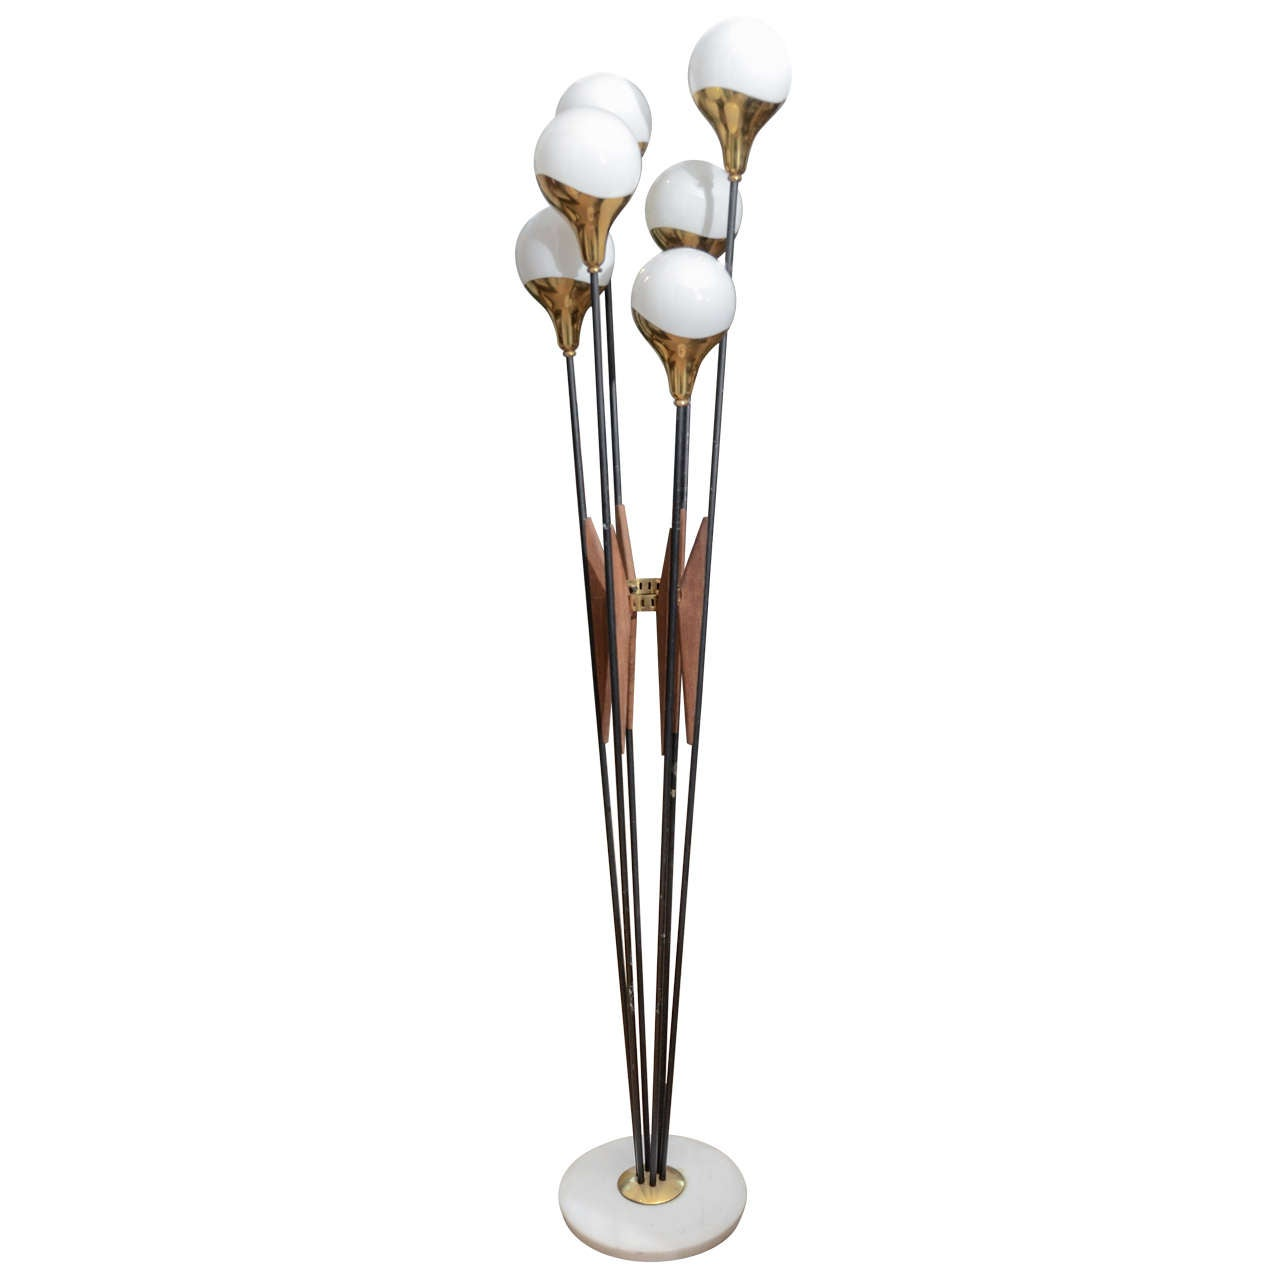 Italian Stilnovo Floor Lamp With Glass Globes And Brass Finishes